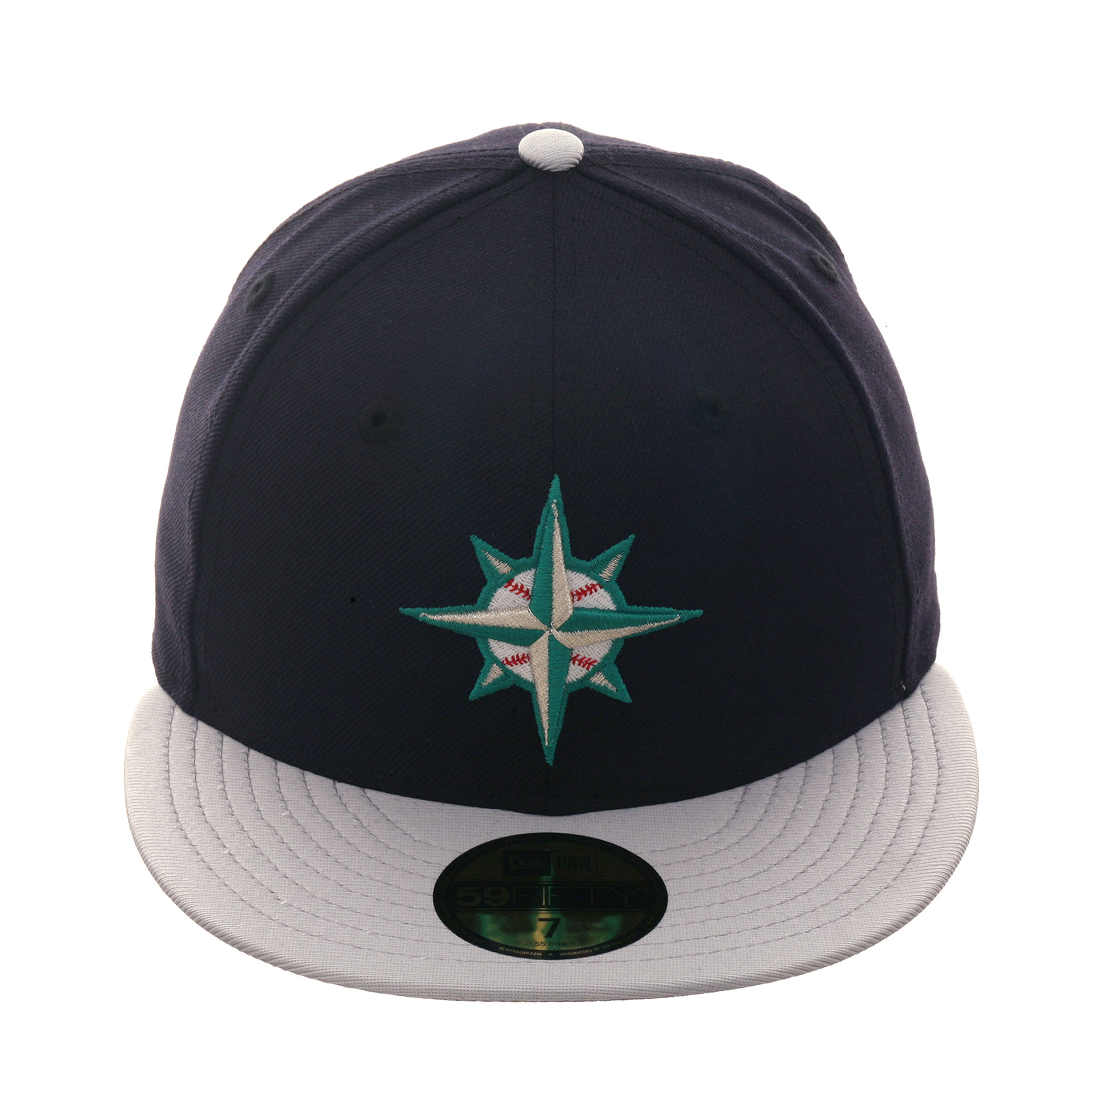 buy online ffc83 10bfc Exclusive New Era 59Fifty Seattle Mariners 1997 Hat - 2T Navy, Metallic  Silver,  14.98 - Save  25.01